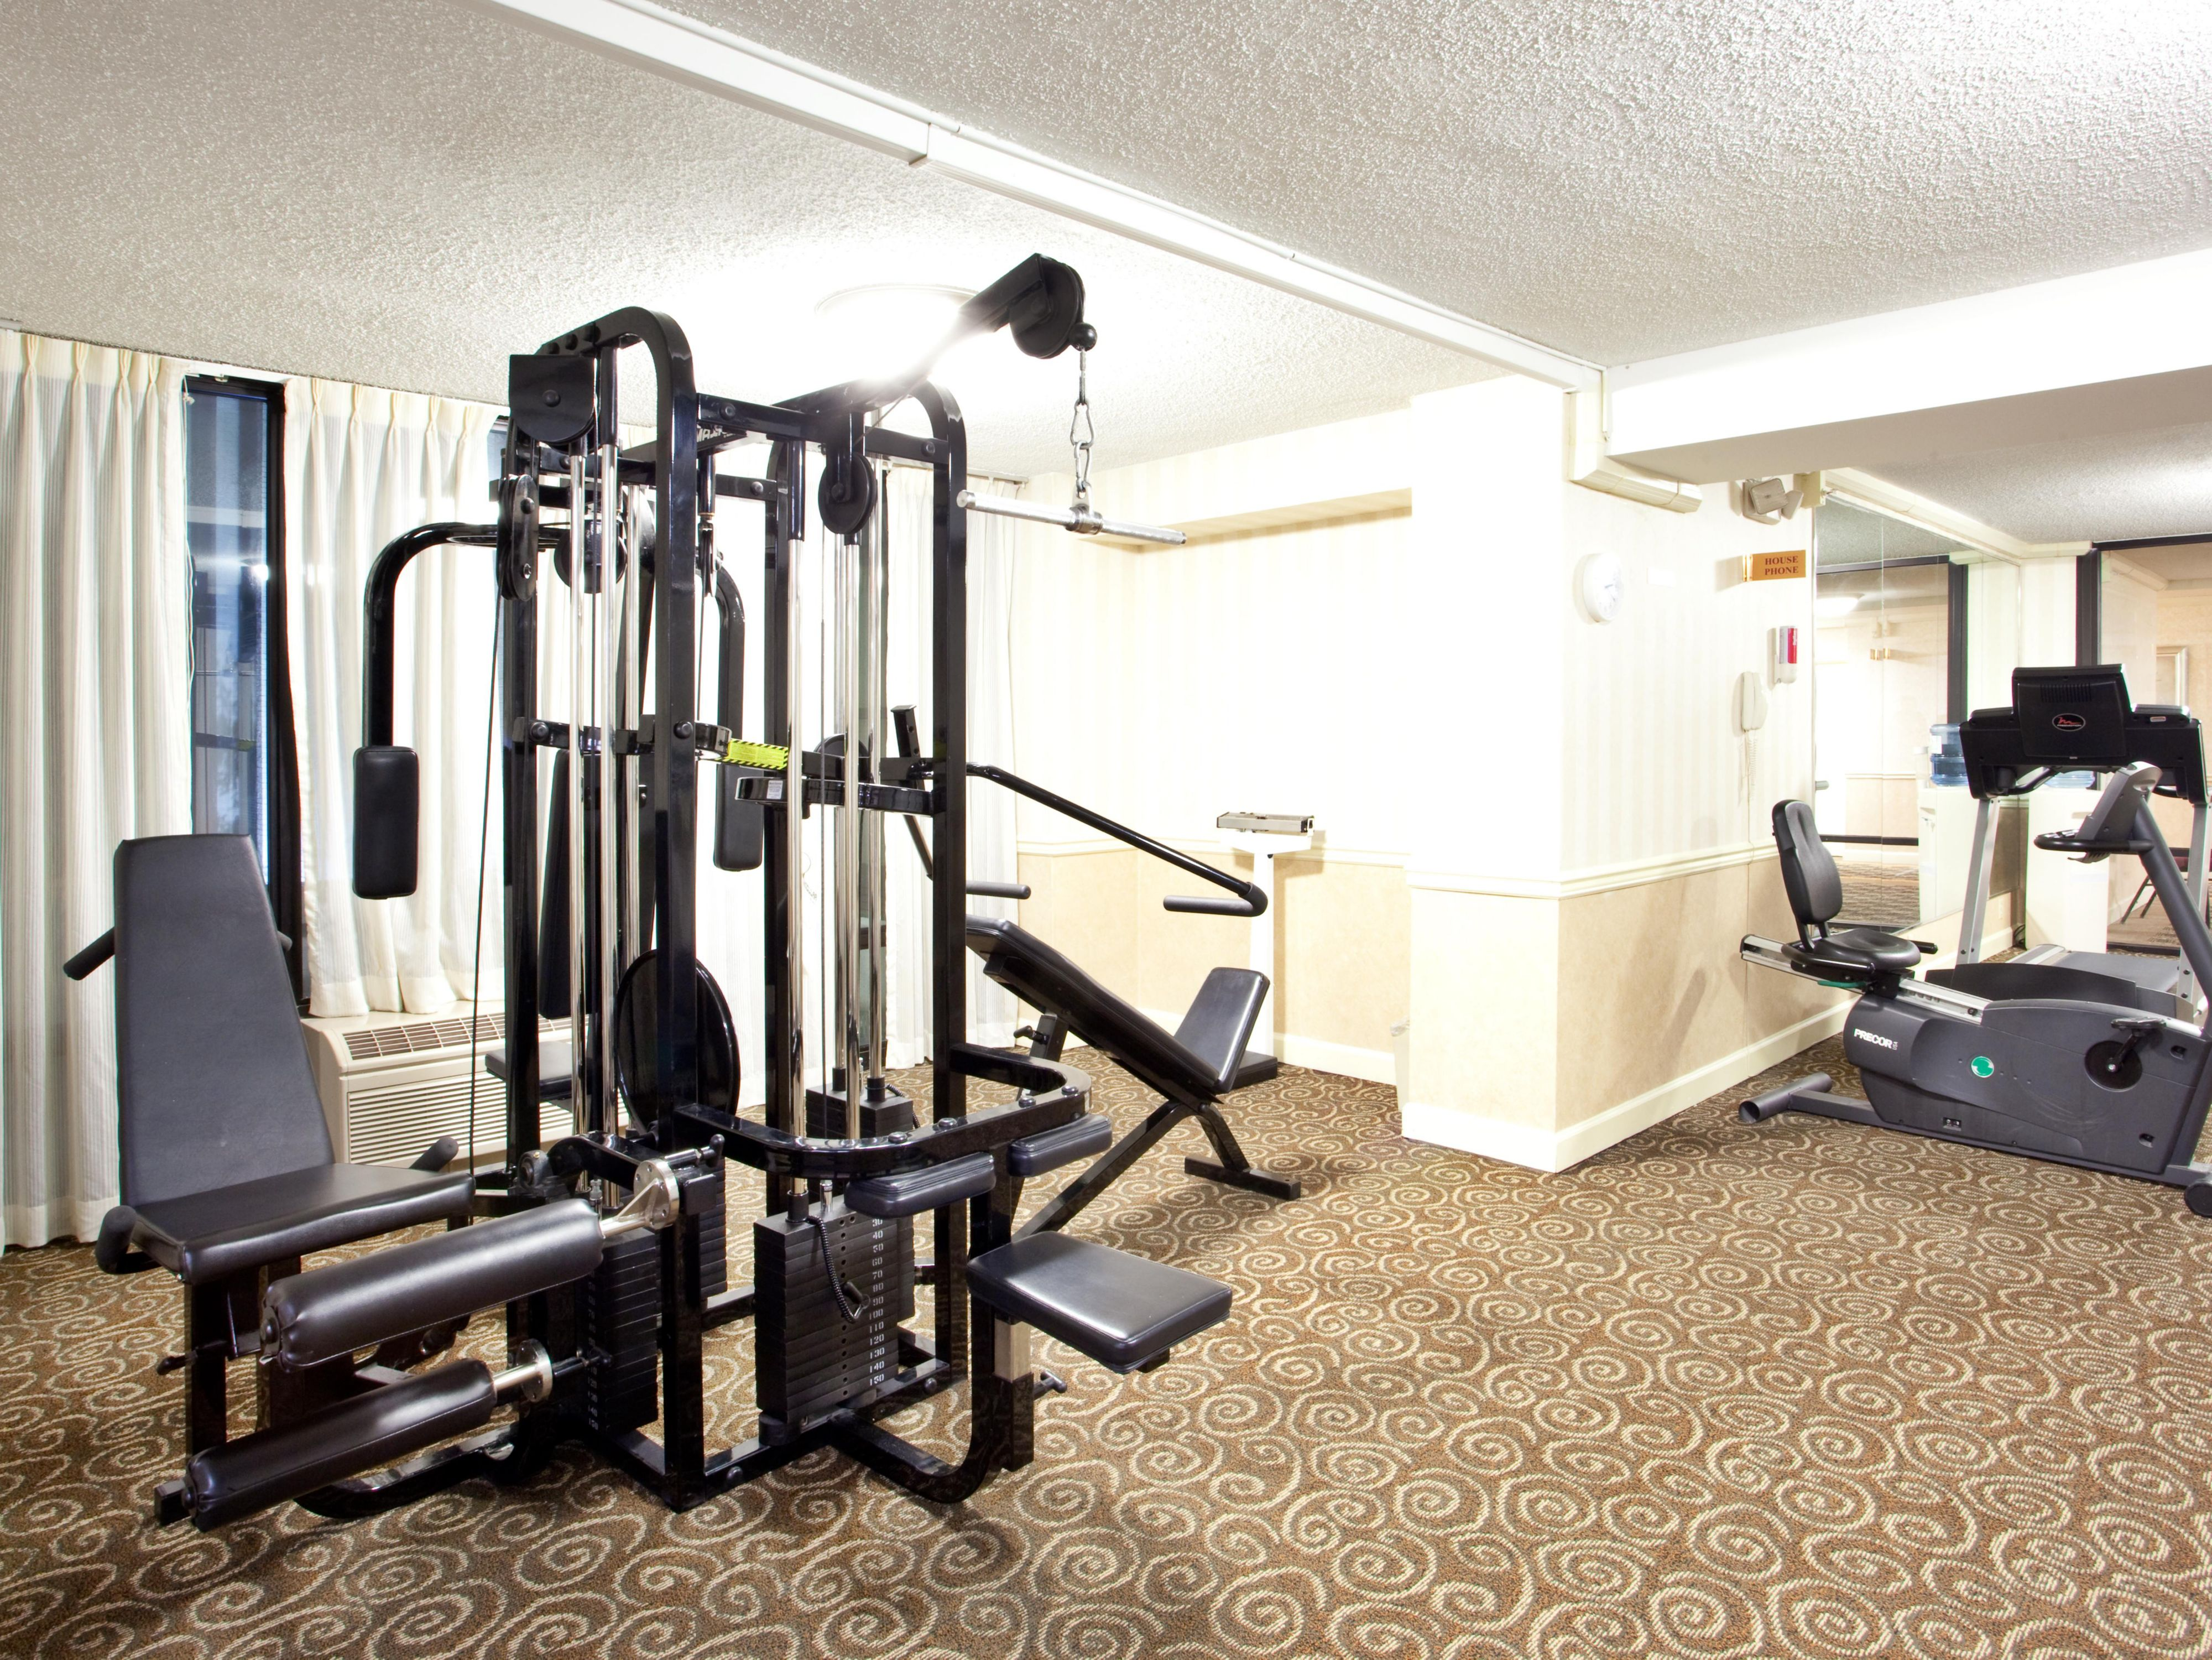 Our Fitness Center is Located on the Second Floor!